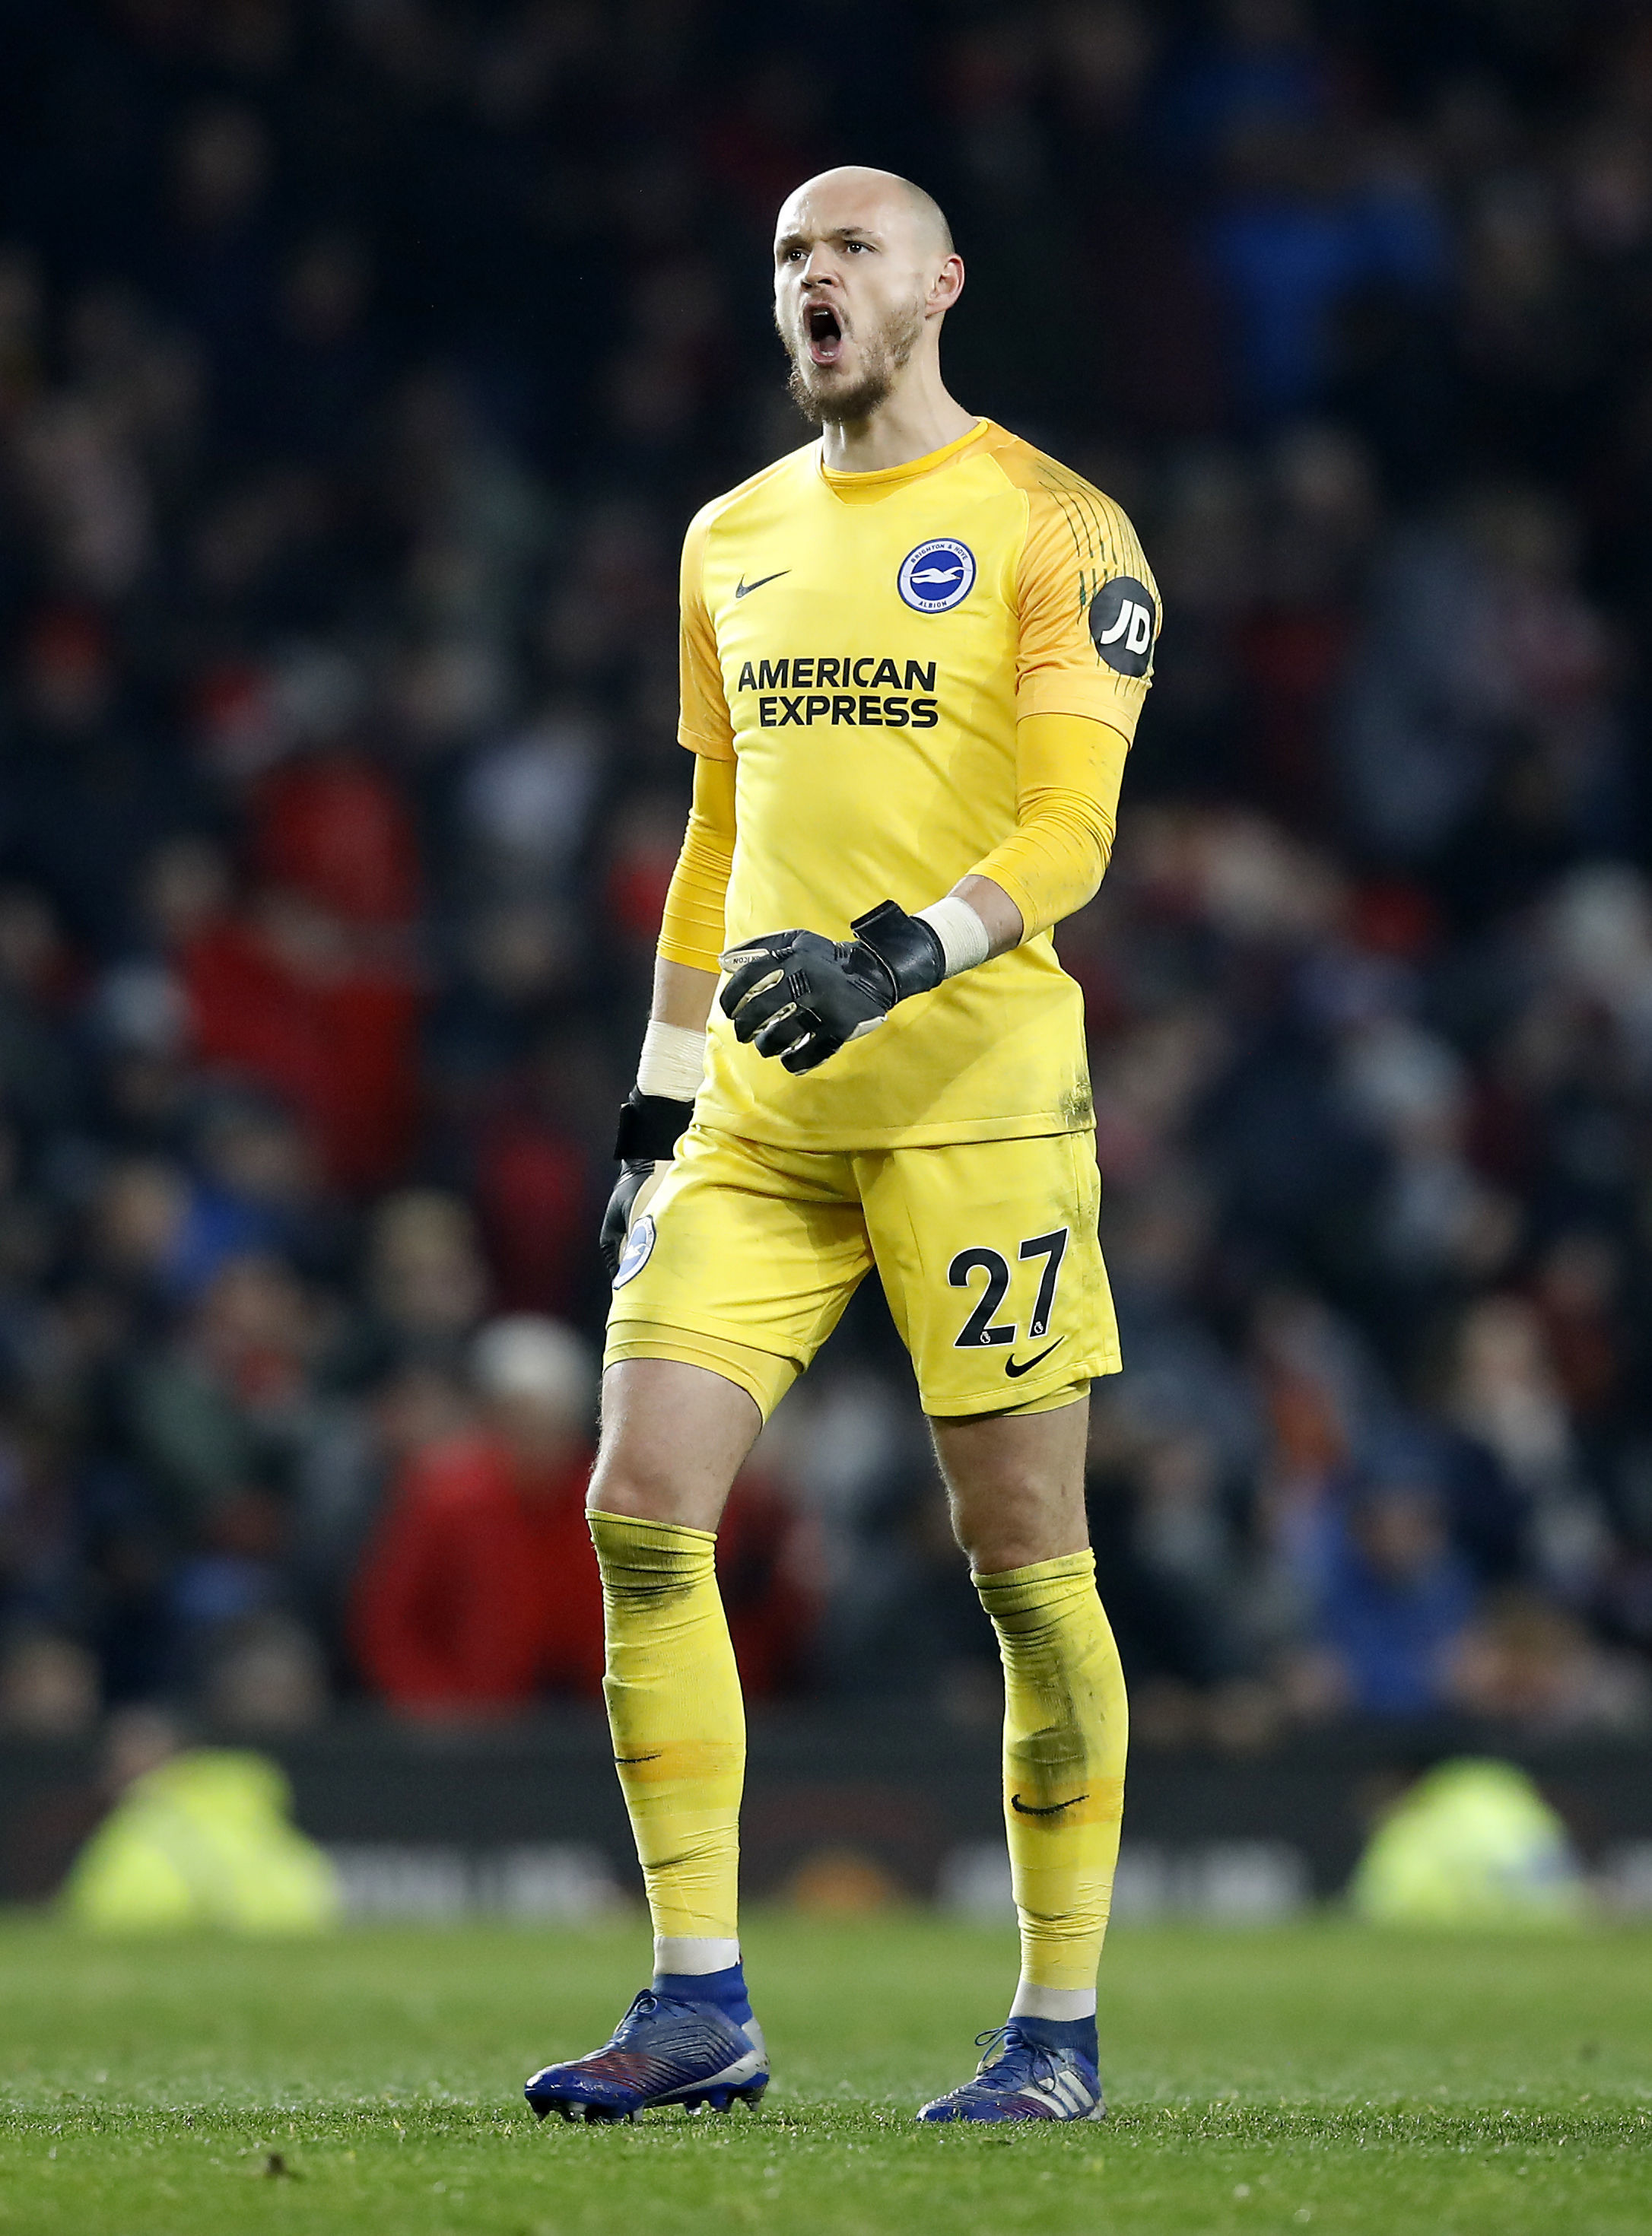 Brighton & Hove Albion goalkeeper David Button after the final whistle during the Premier League match at Old Trafford, Manchester. PRESS ASSOCIATION Photo. Picture date: Saturday January 19, 2019. See PA story SOCCER Man Utd. Photo credit should read